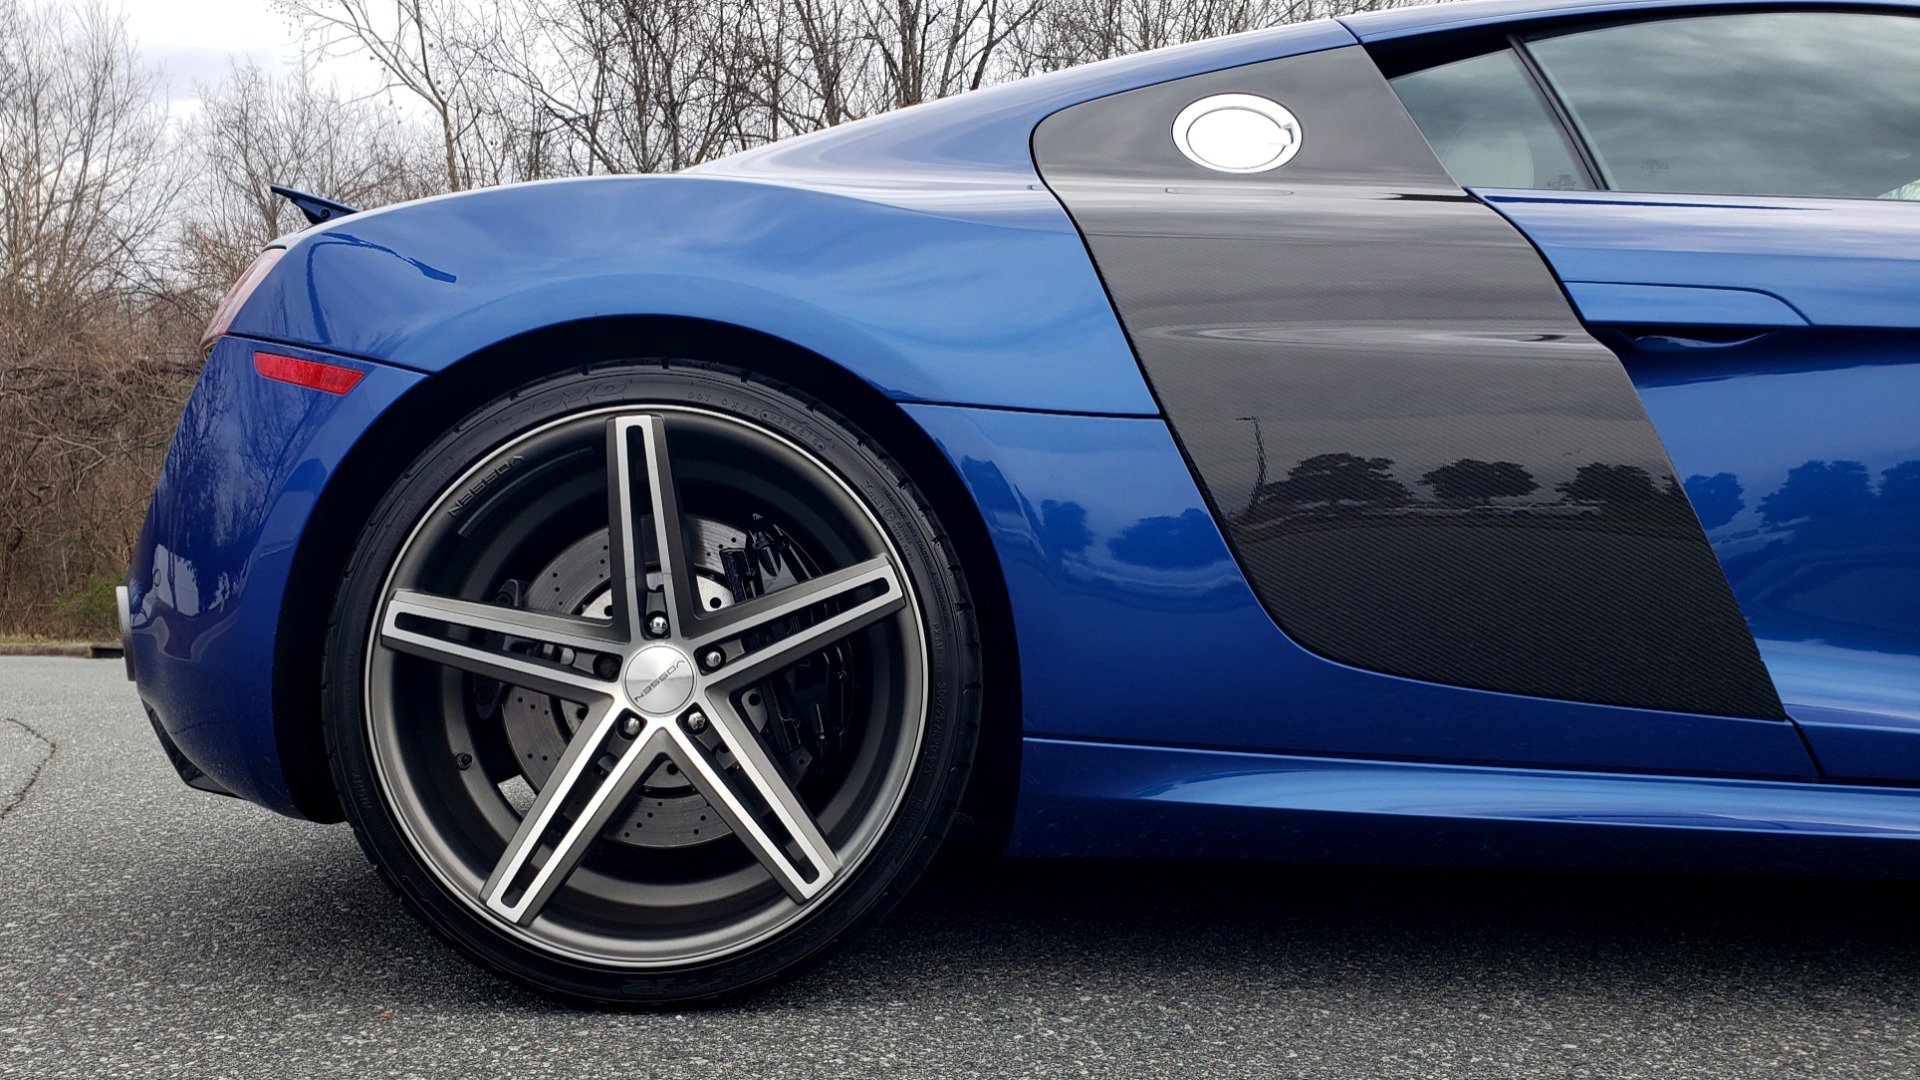 Used 2010 Audi R8 5.2L V10 / AWD / COUPE / NAV / 6-SPD AUTO / CUSTOM WHEELS for sale Sold at Formula Imports in Charlotte NC 28227 73